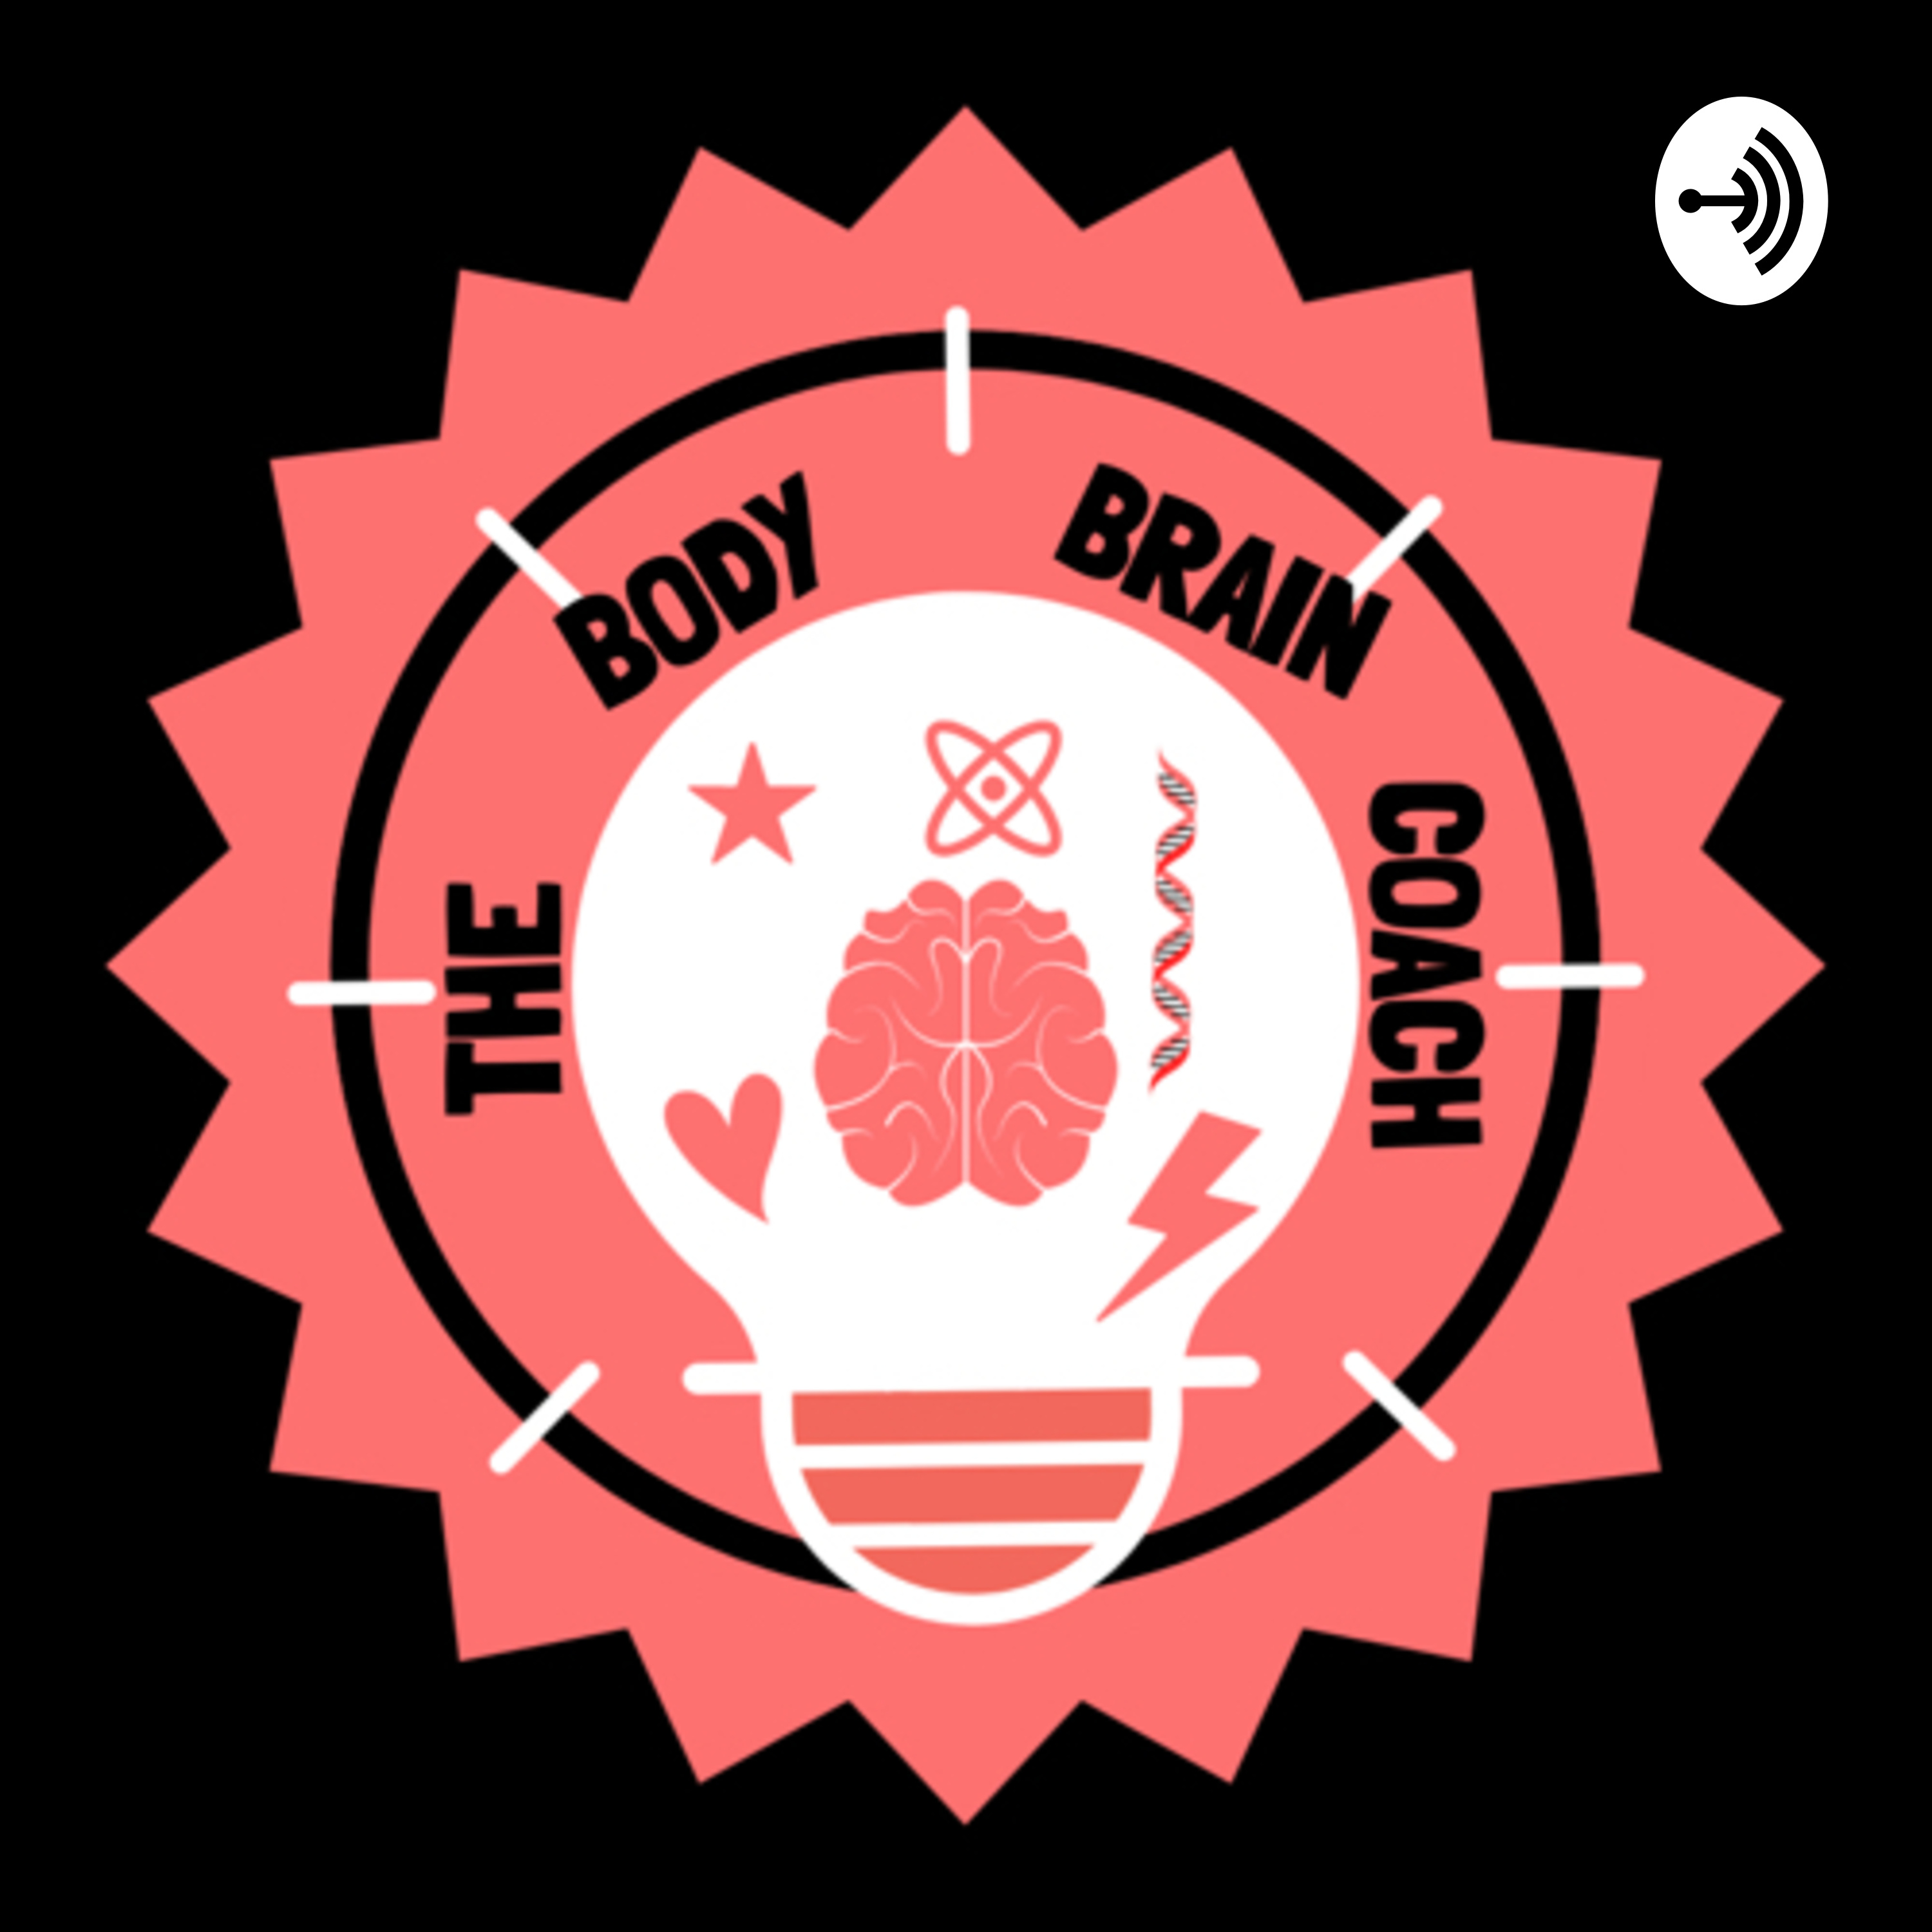 The Body-Brain Broadcast | Listen Free on Castbox